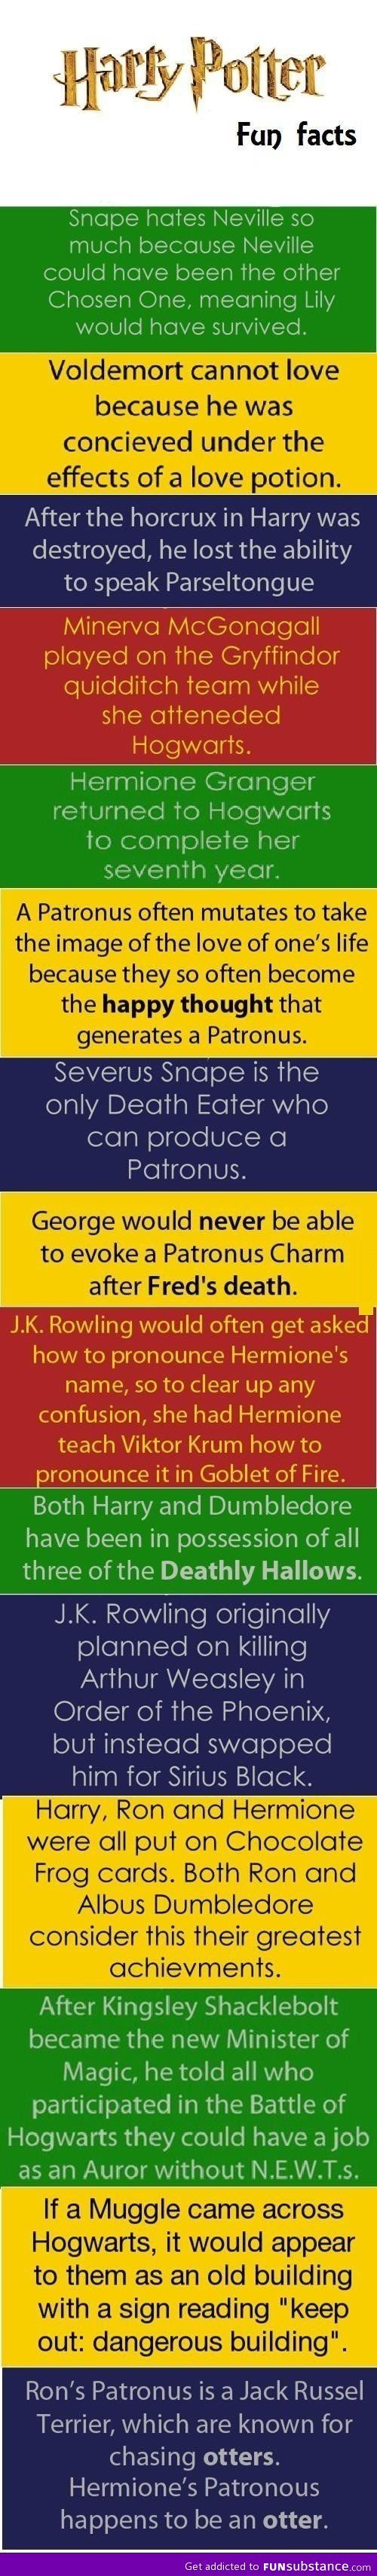 Harry Potter Fun Facts- True or not, insight on things left untold are always fascinating!